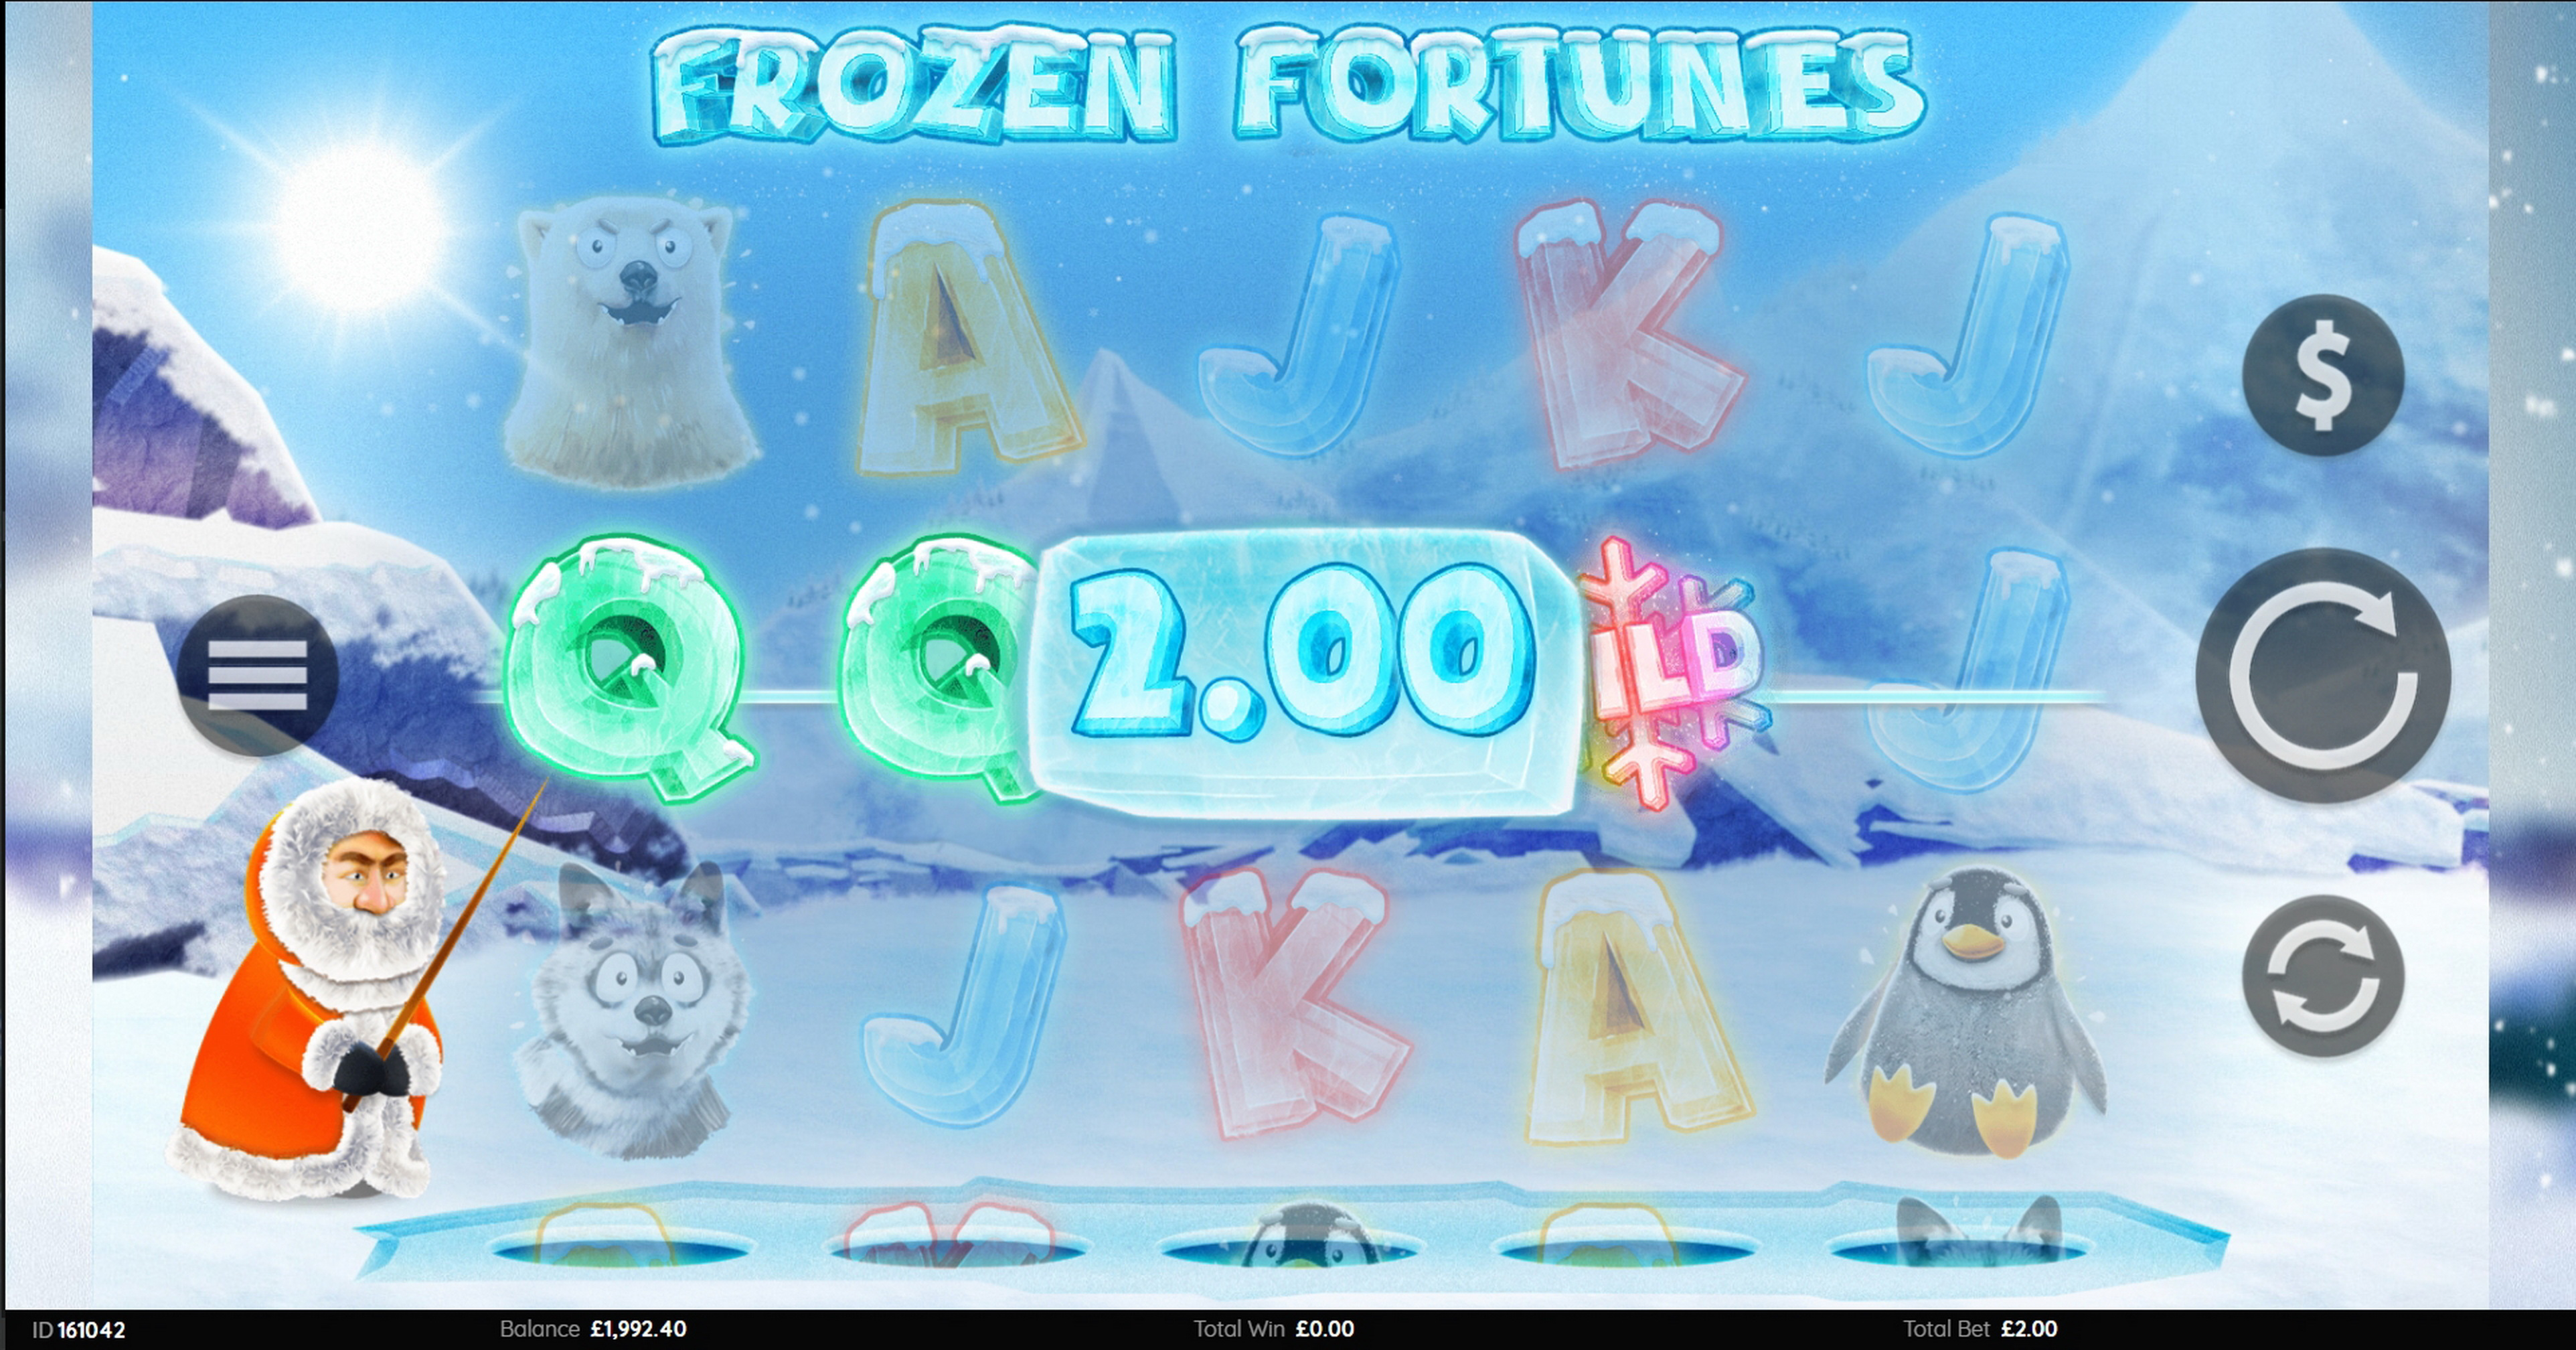 Win Money in Frozen Fortunes Free Slot Game by Endemol Games